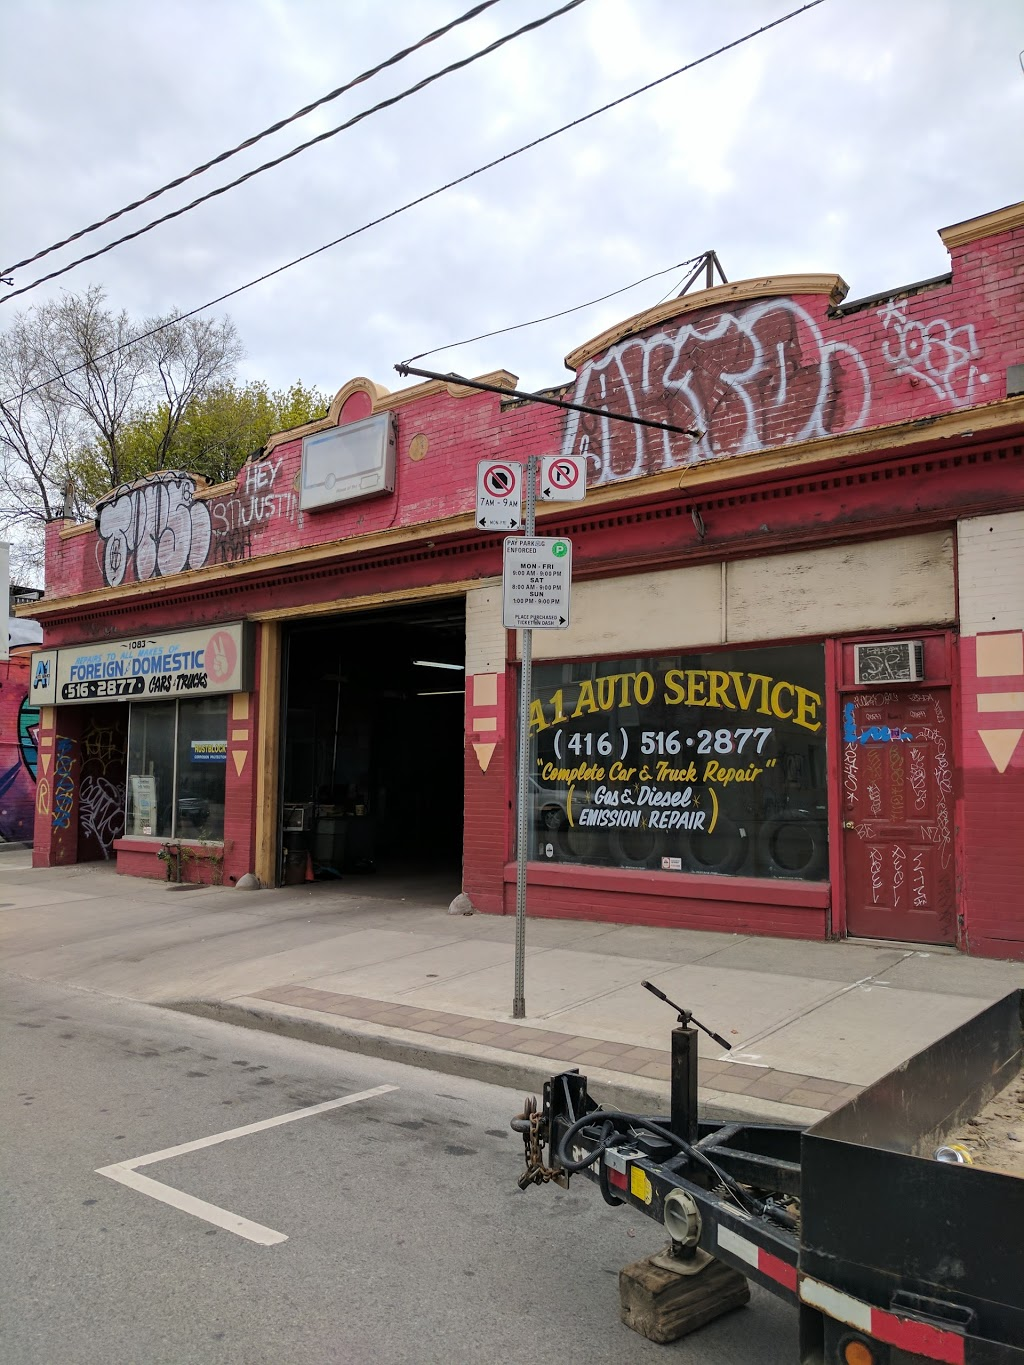 A-1 Auto Service | car repair | 1083 Dundas St W, Toronto, ON M6J 1W9, Canada | 4165162877 OR +1 416-516-2877